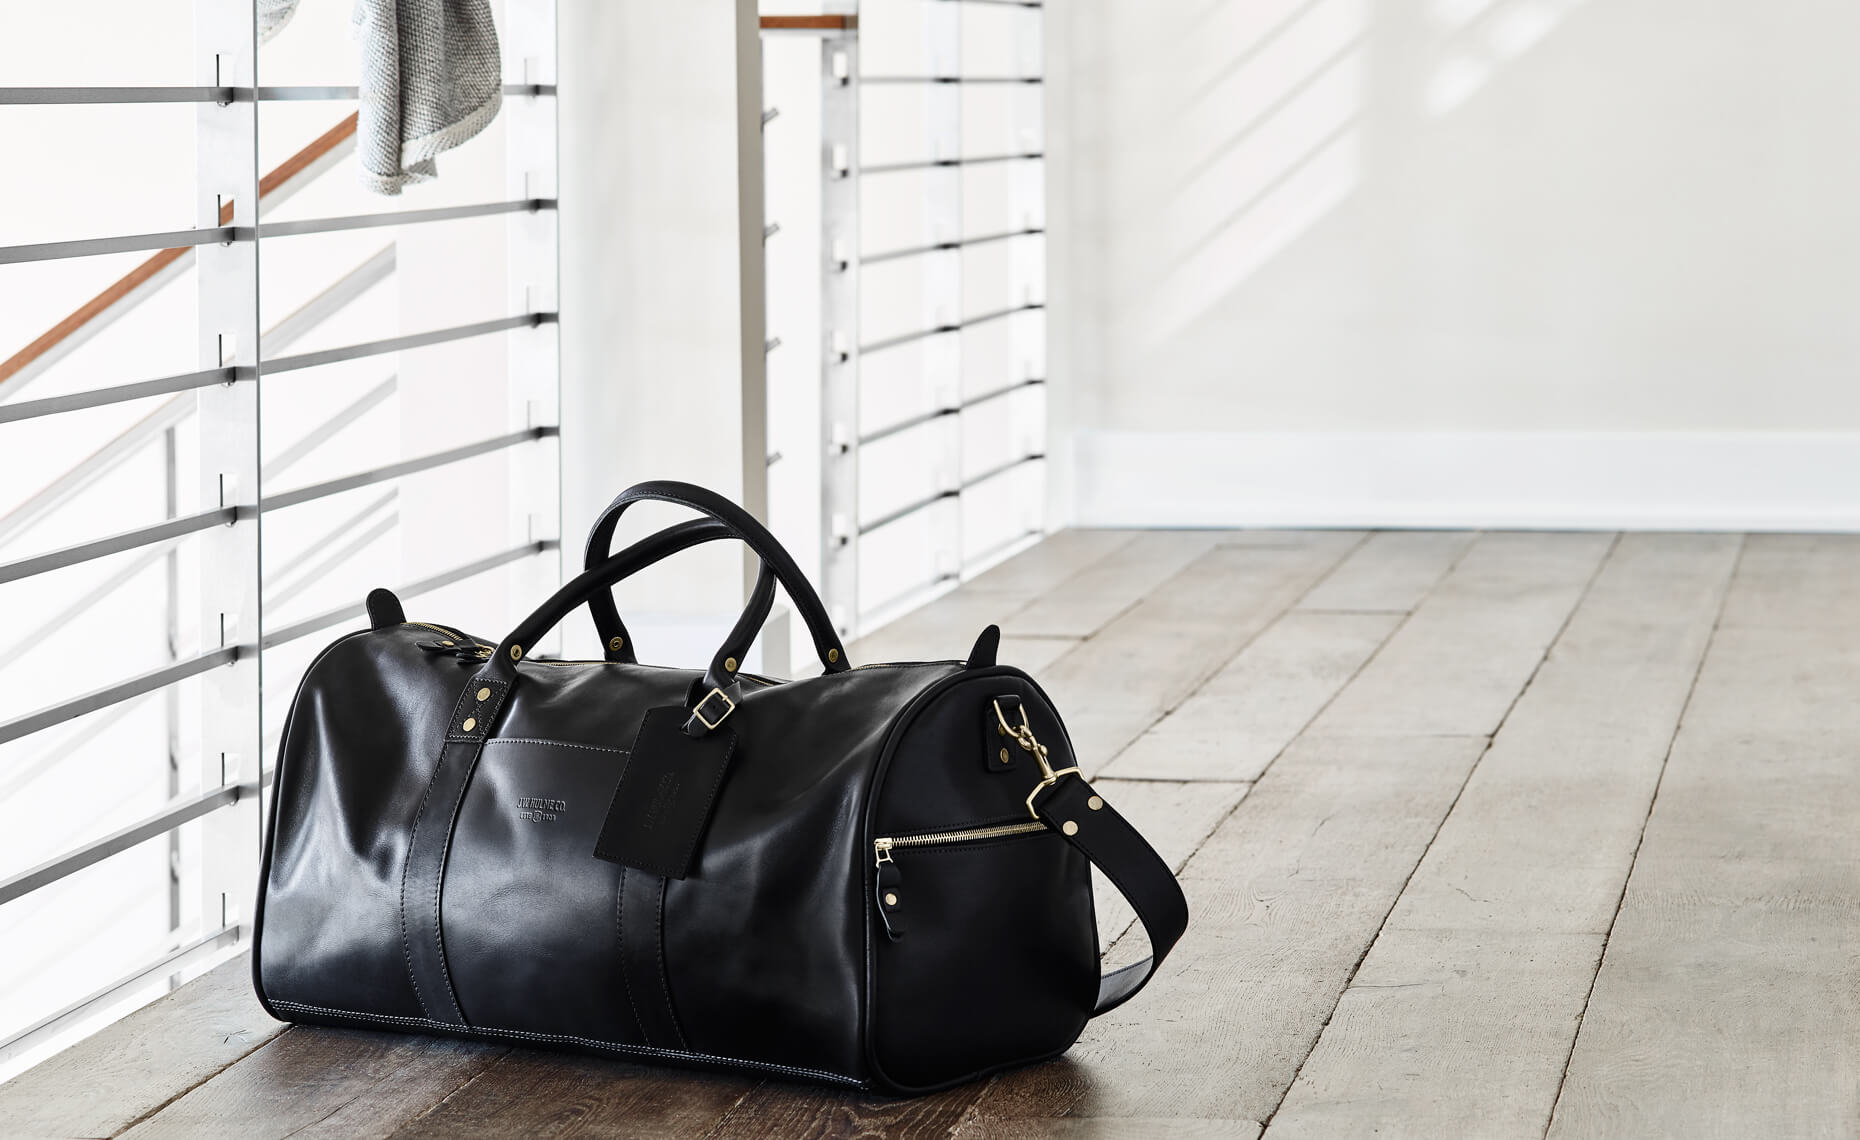 76VX_JWH_102015_CONTINENTAL_DUFFLE_HOMEPAGE_001